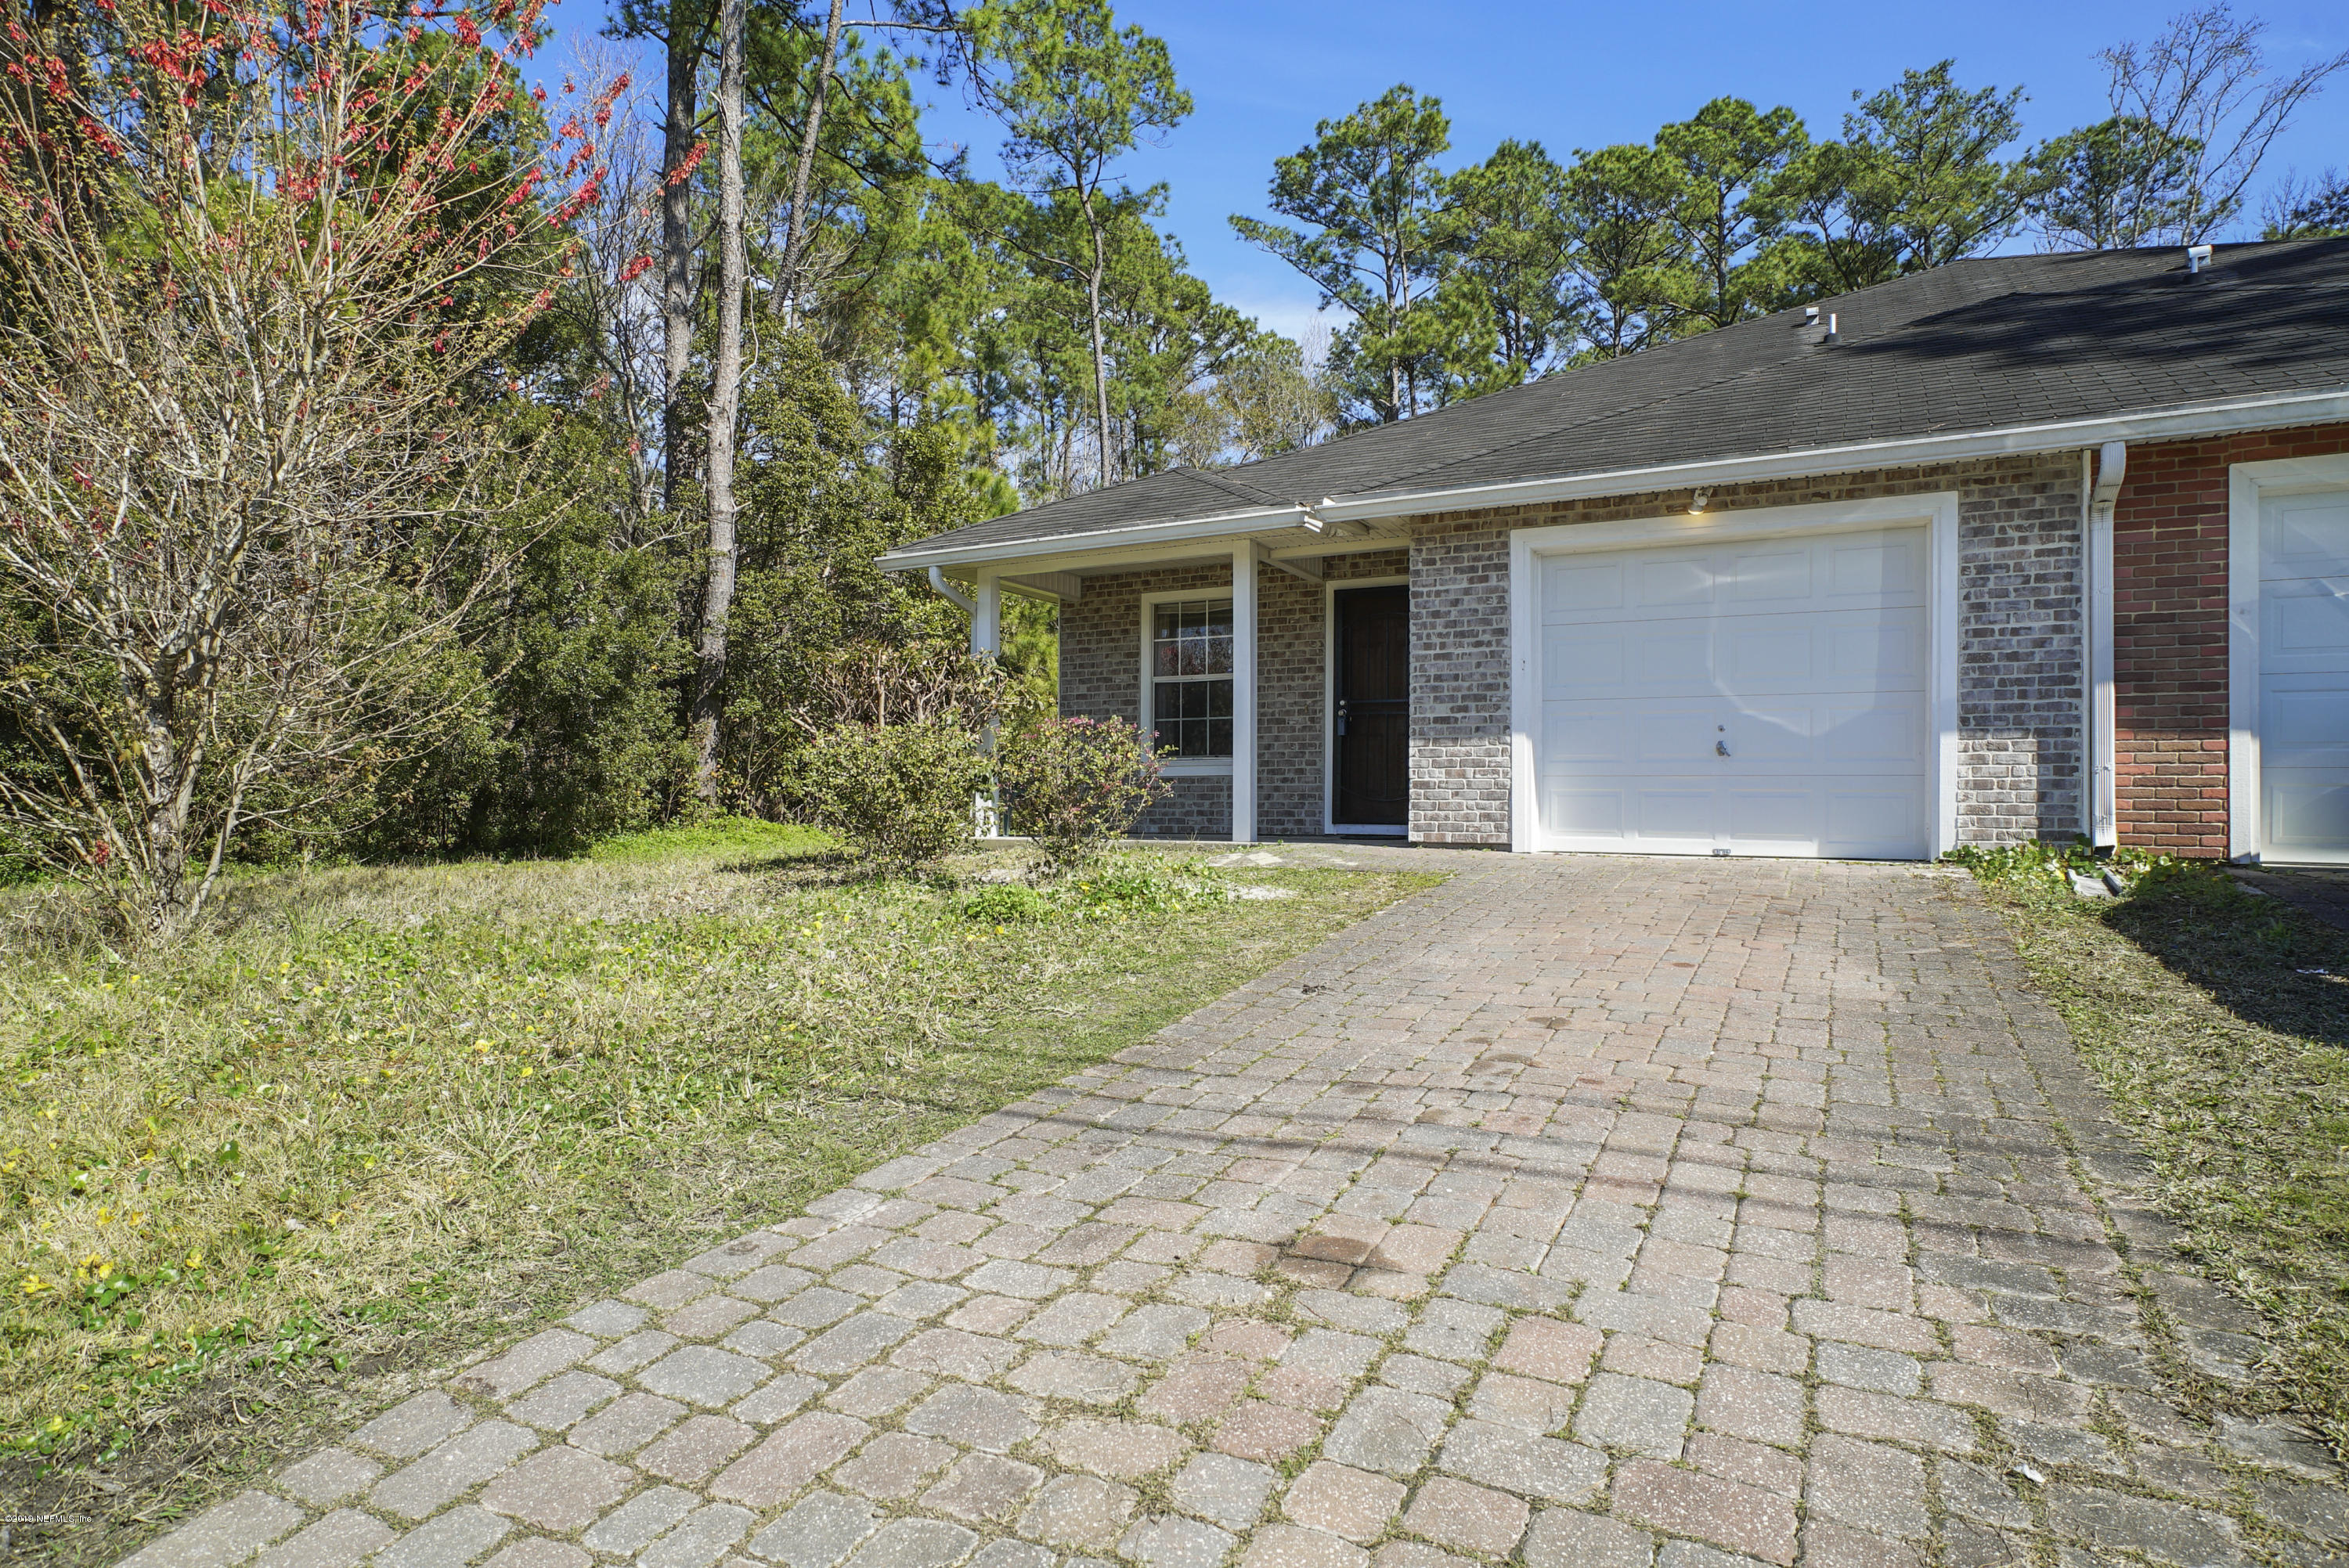 445 PECAN- JACKSONVILLE- FLORIDA 32211, 3 Bedrooms Bedrooms, ,2 BathroomsBathrooms,Single family,For sale,PECAN,979049